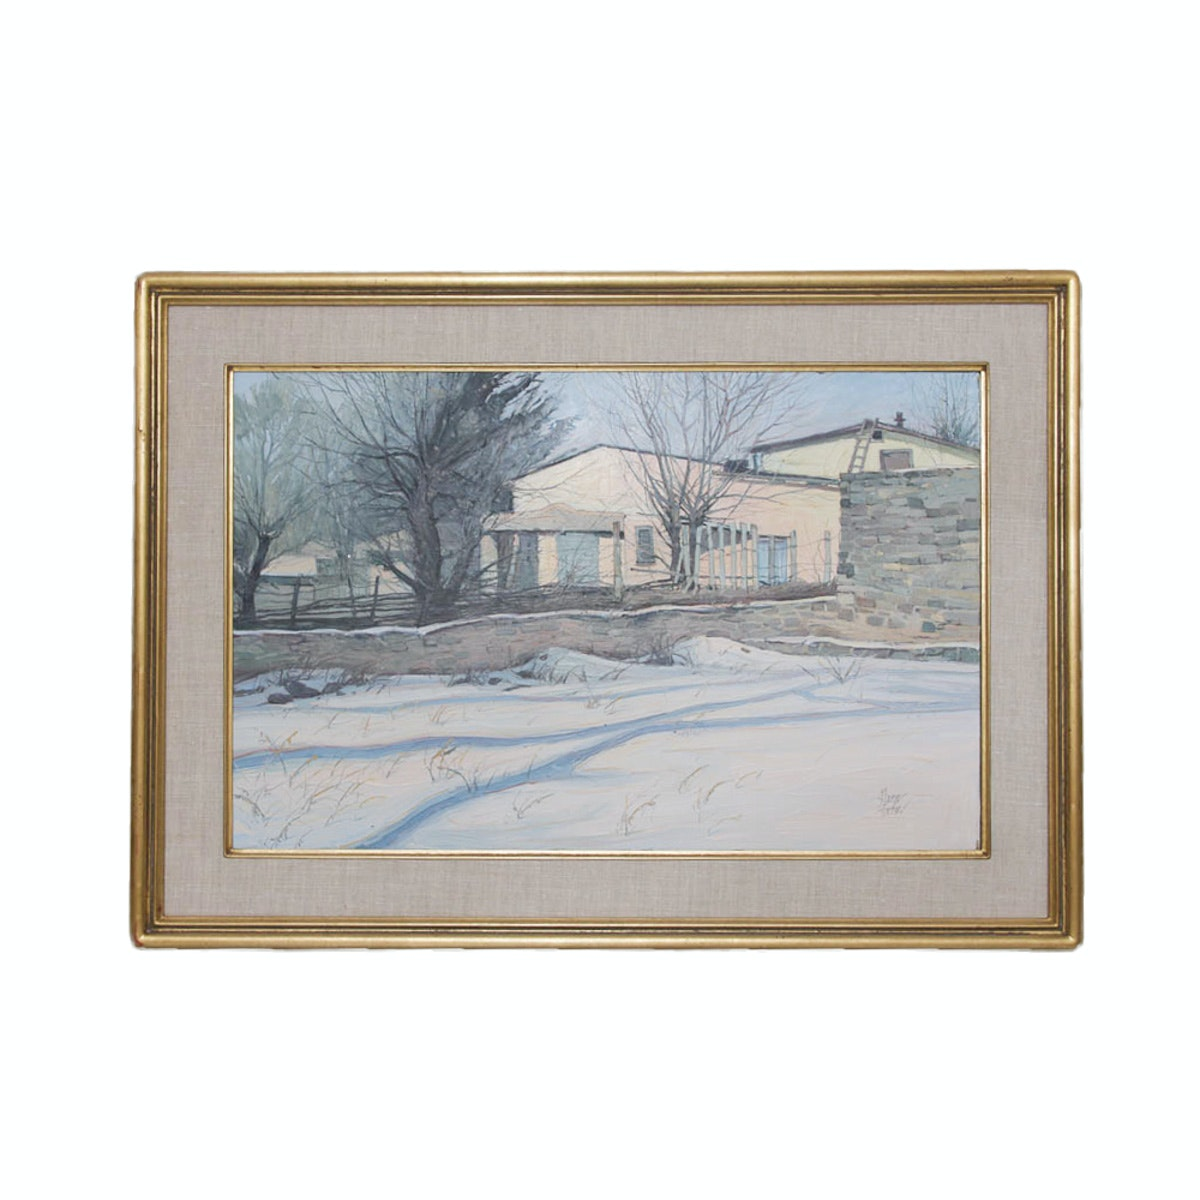 George Fischer Original Oil Painting of a New Mexico Adobe Home